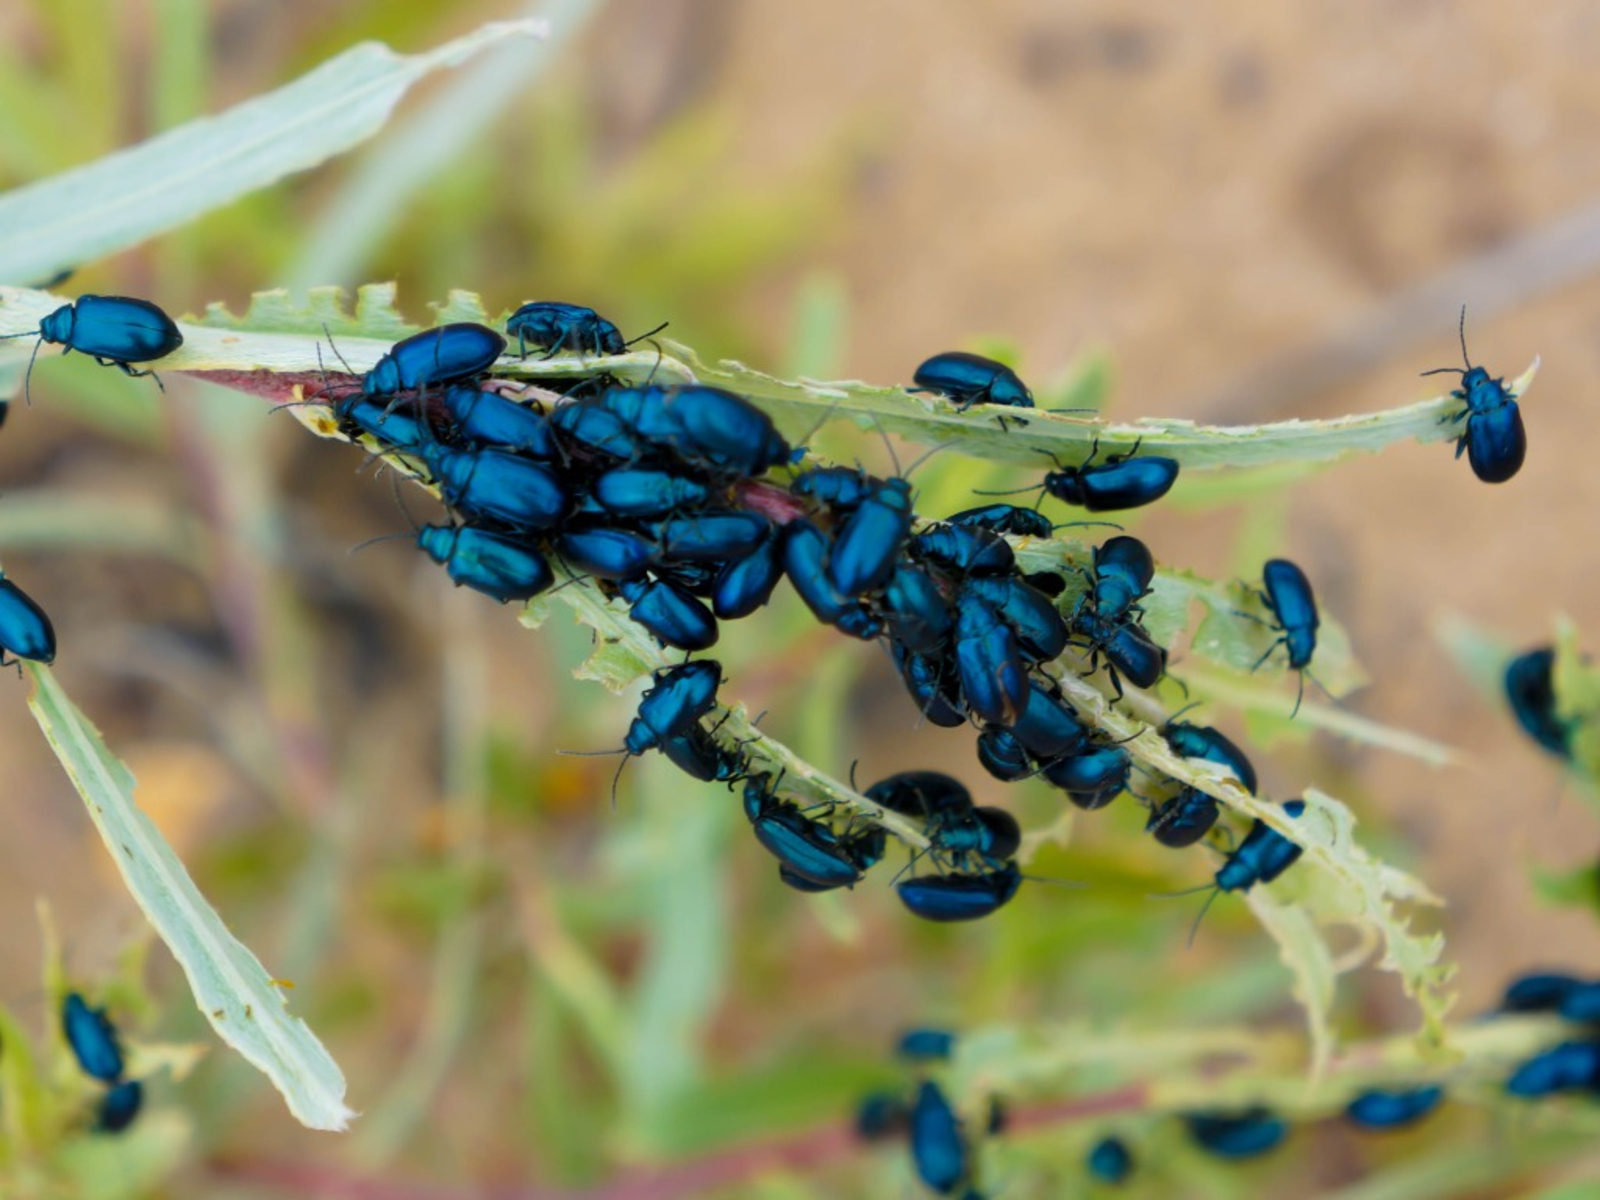 flea beetles picture id186931683 - How To Get Rid Of Flea Beetles On Potato Plants